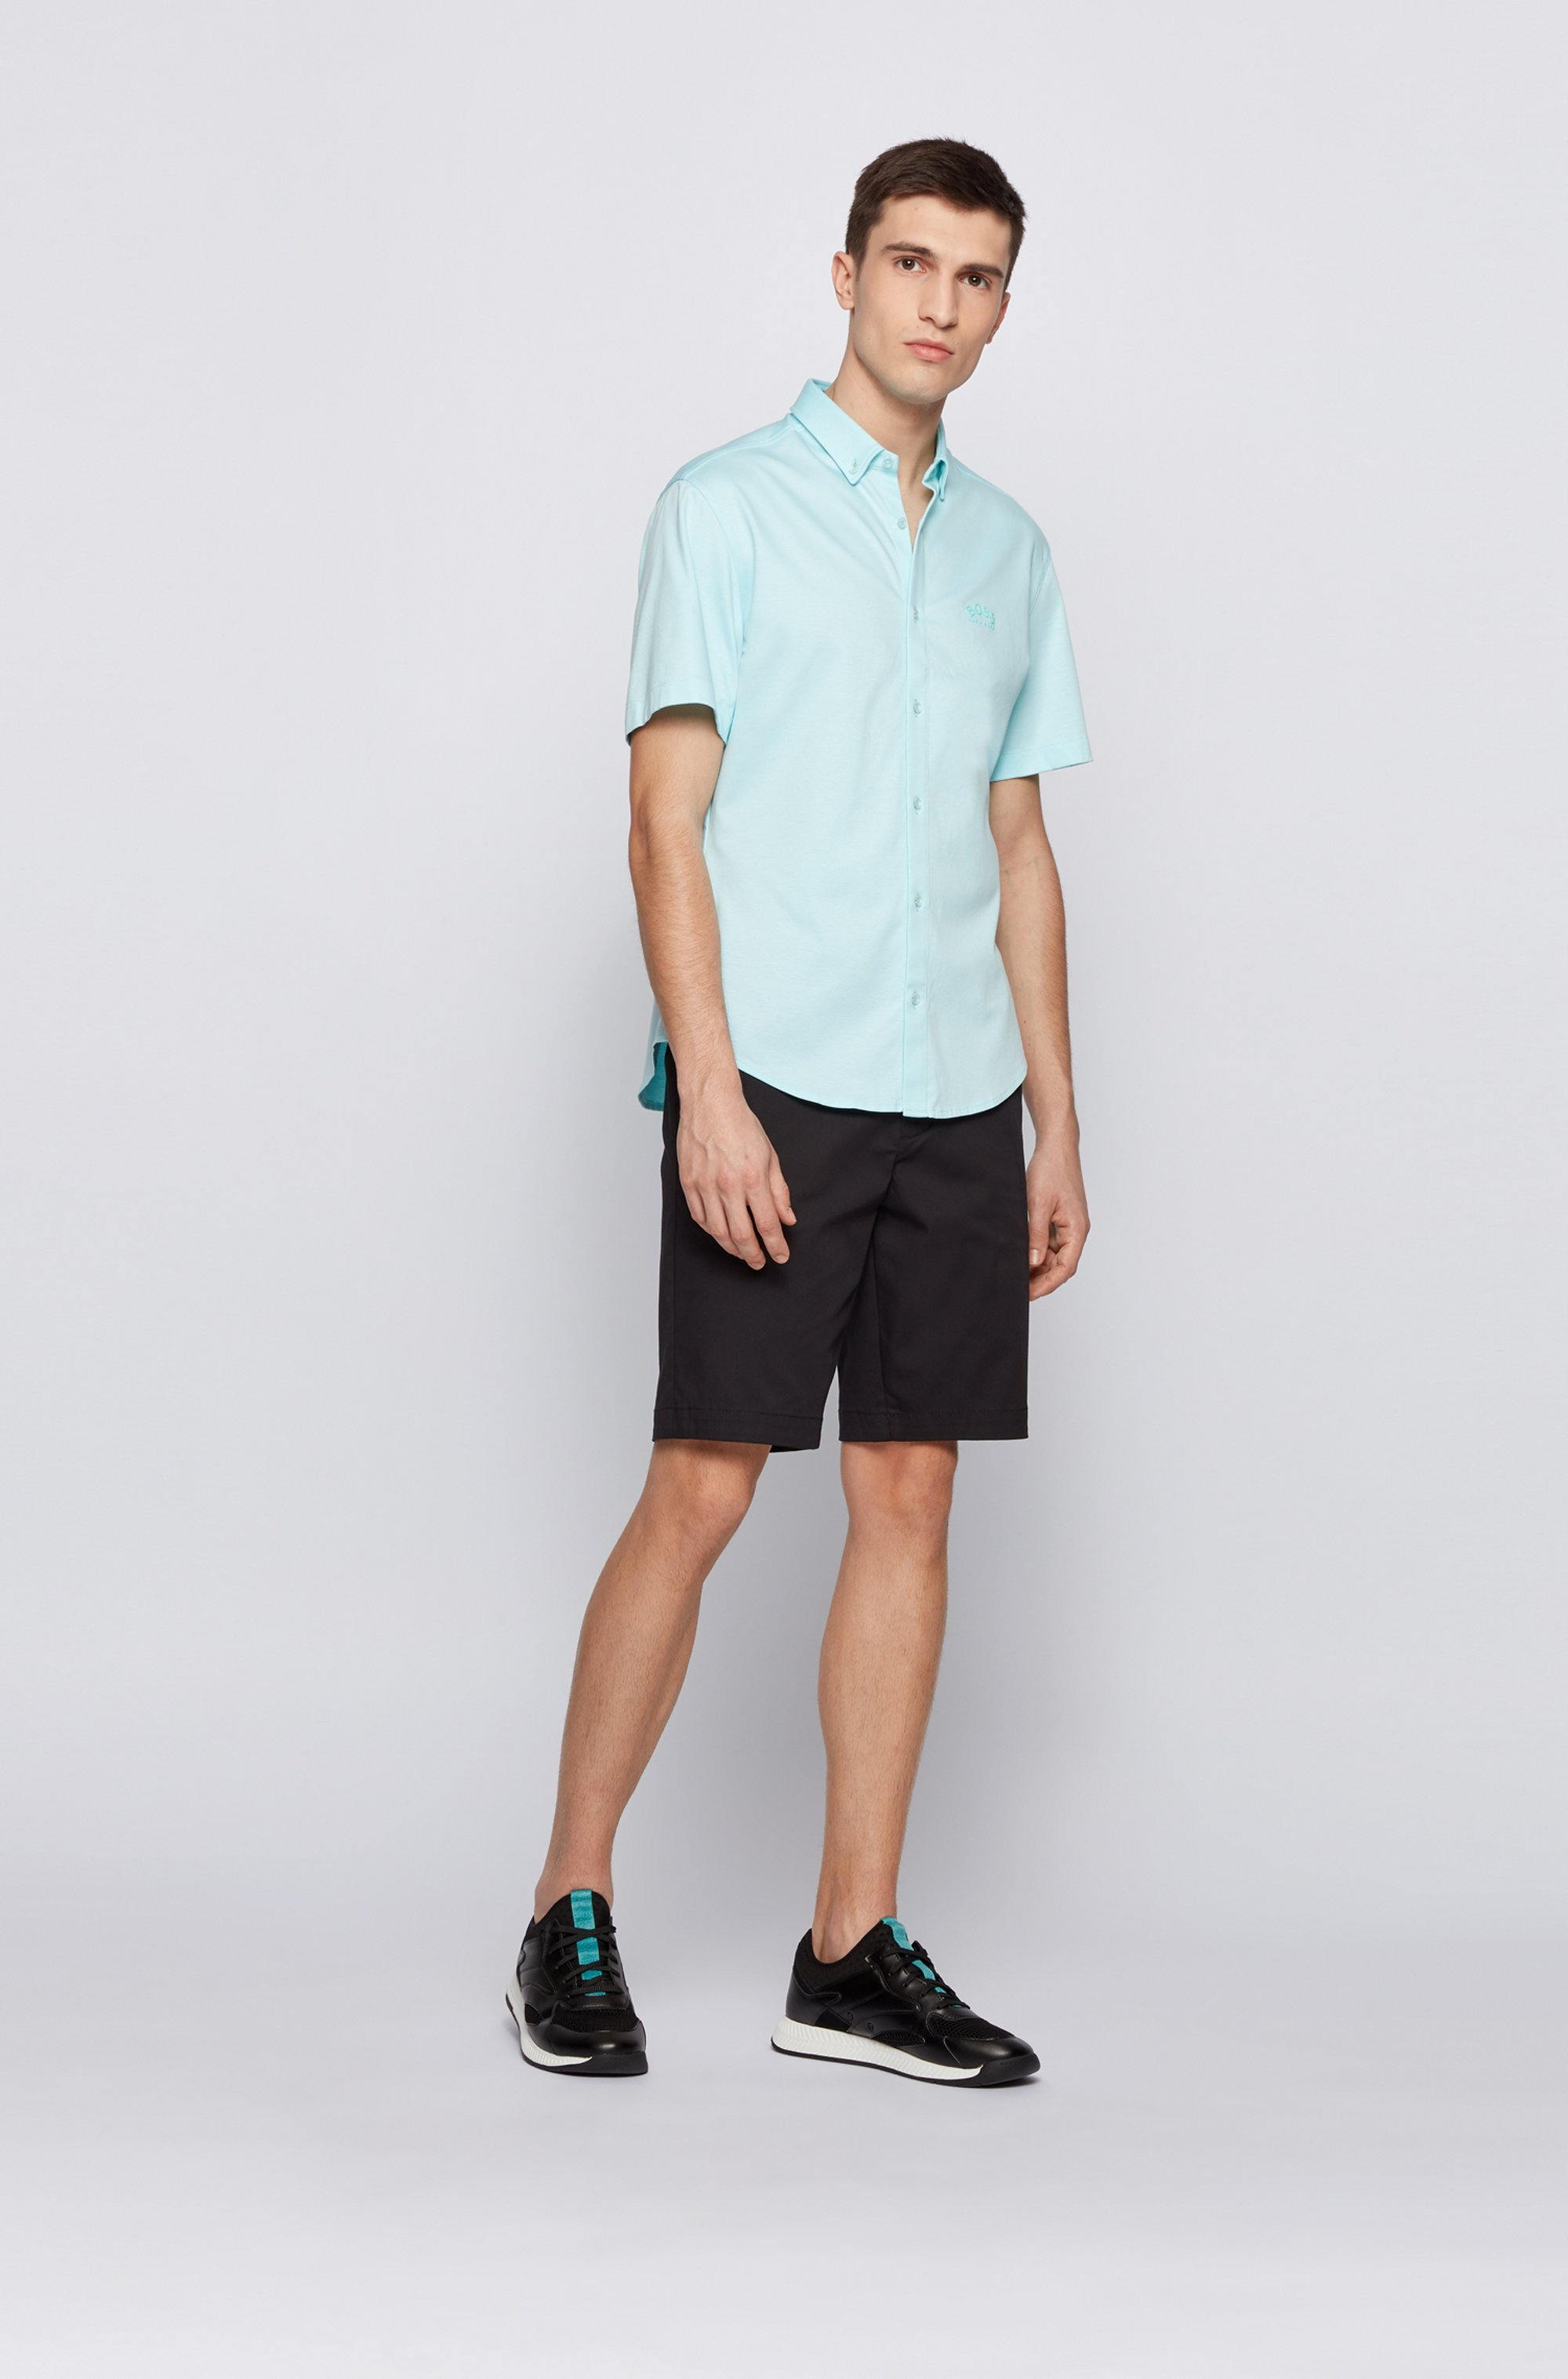 Short-sleeved regular-fit shirt with curved logo